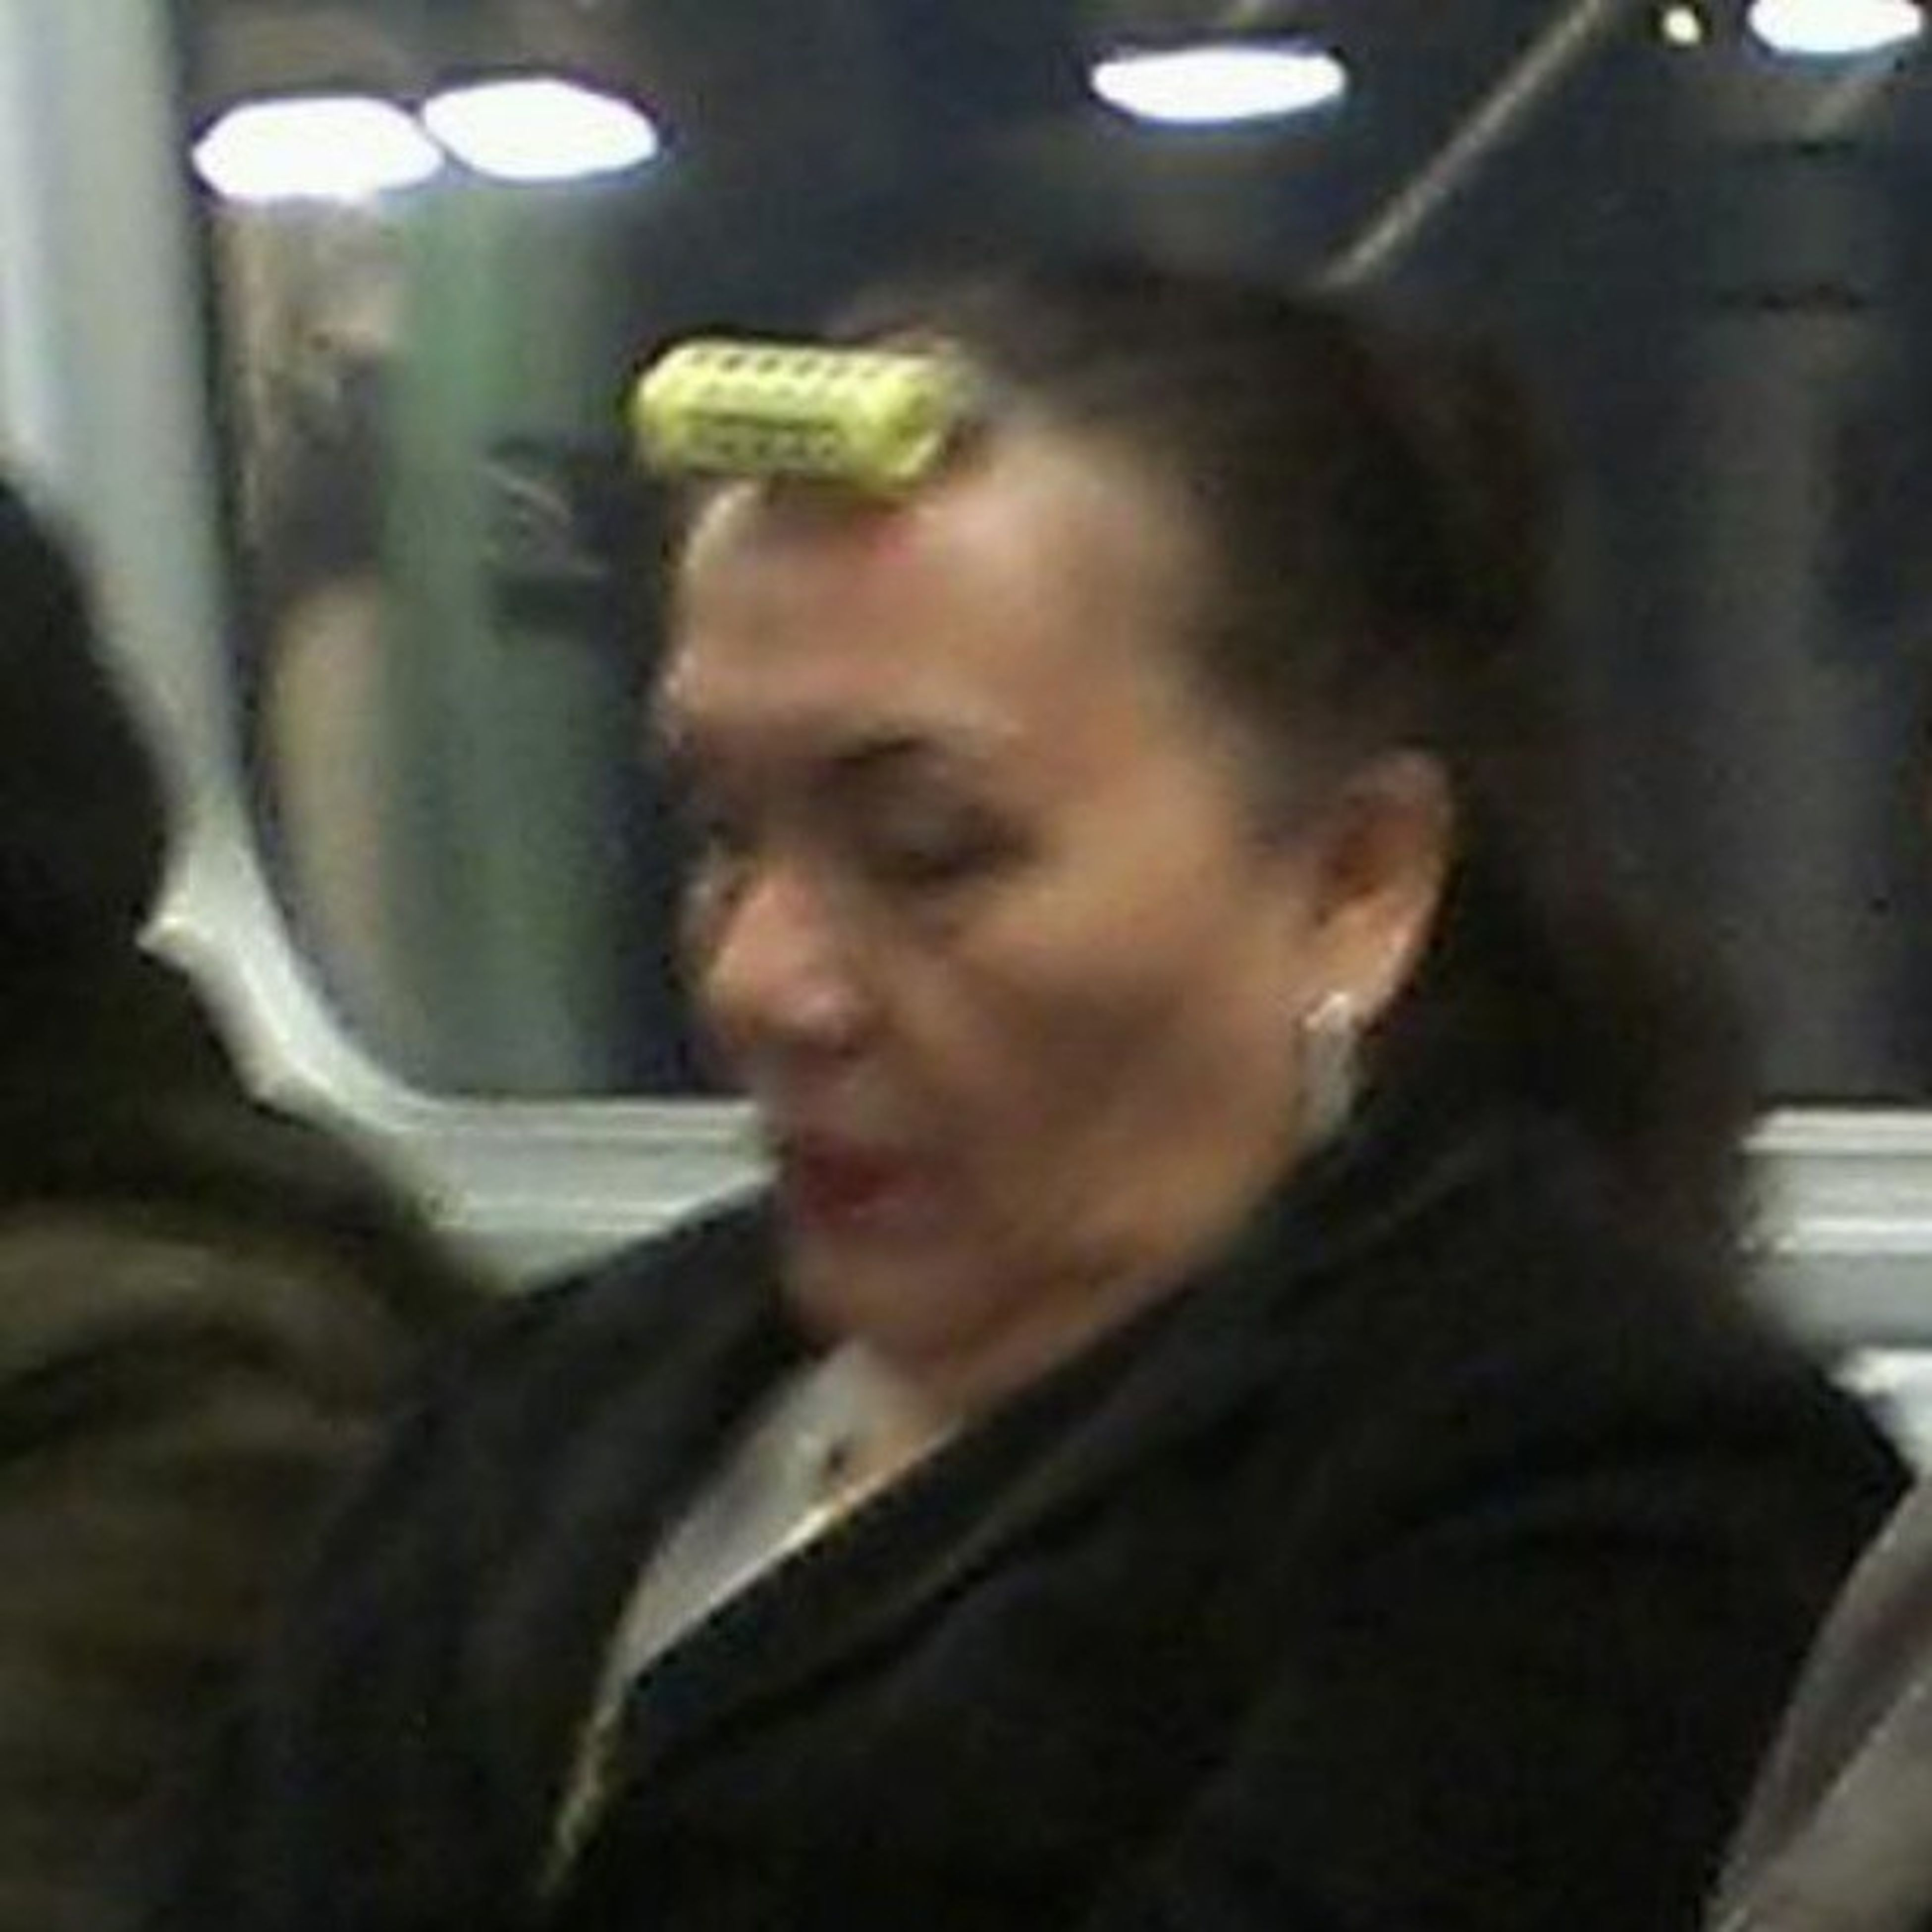 Smdh... The stuff you see on the train in the morning!!! Onthewaytowork Singlecurler Dontbescared  Sheknowswhatshesdoing ftrainantics earlymorninglaughs @guccilisalisa3